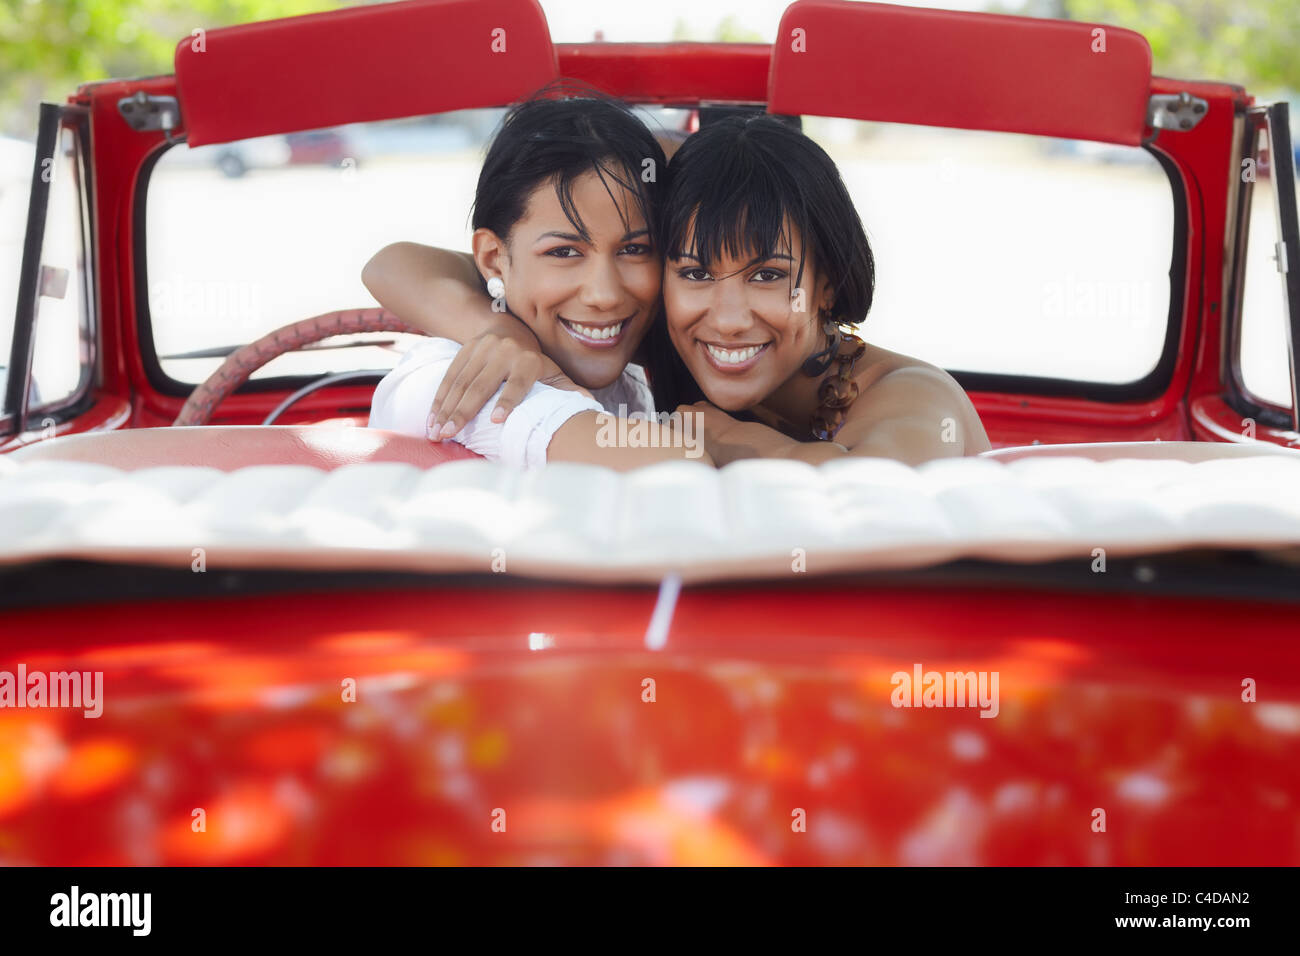 young adult brunette twin women driving convertible red car and looking over shoulders. Horizontal shape, rear view, - Stock Image